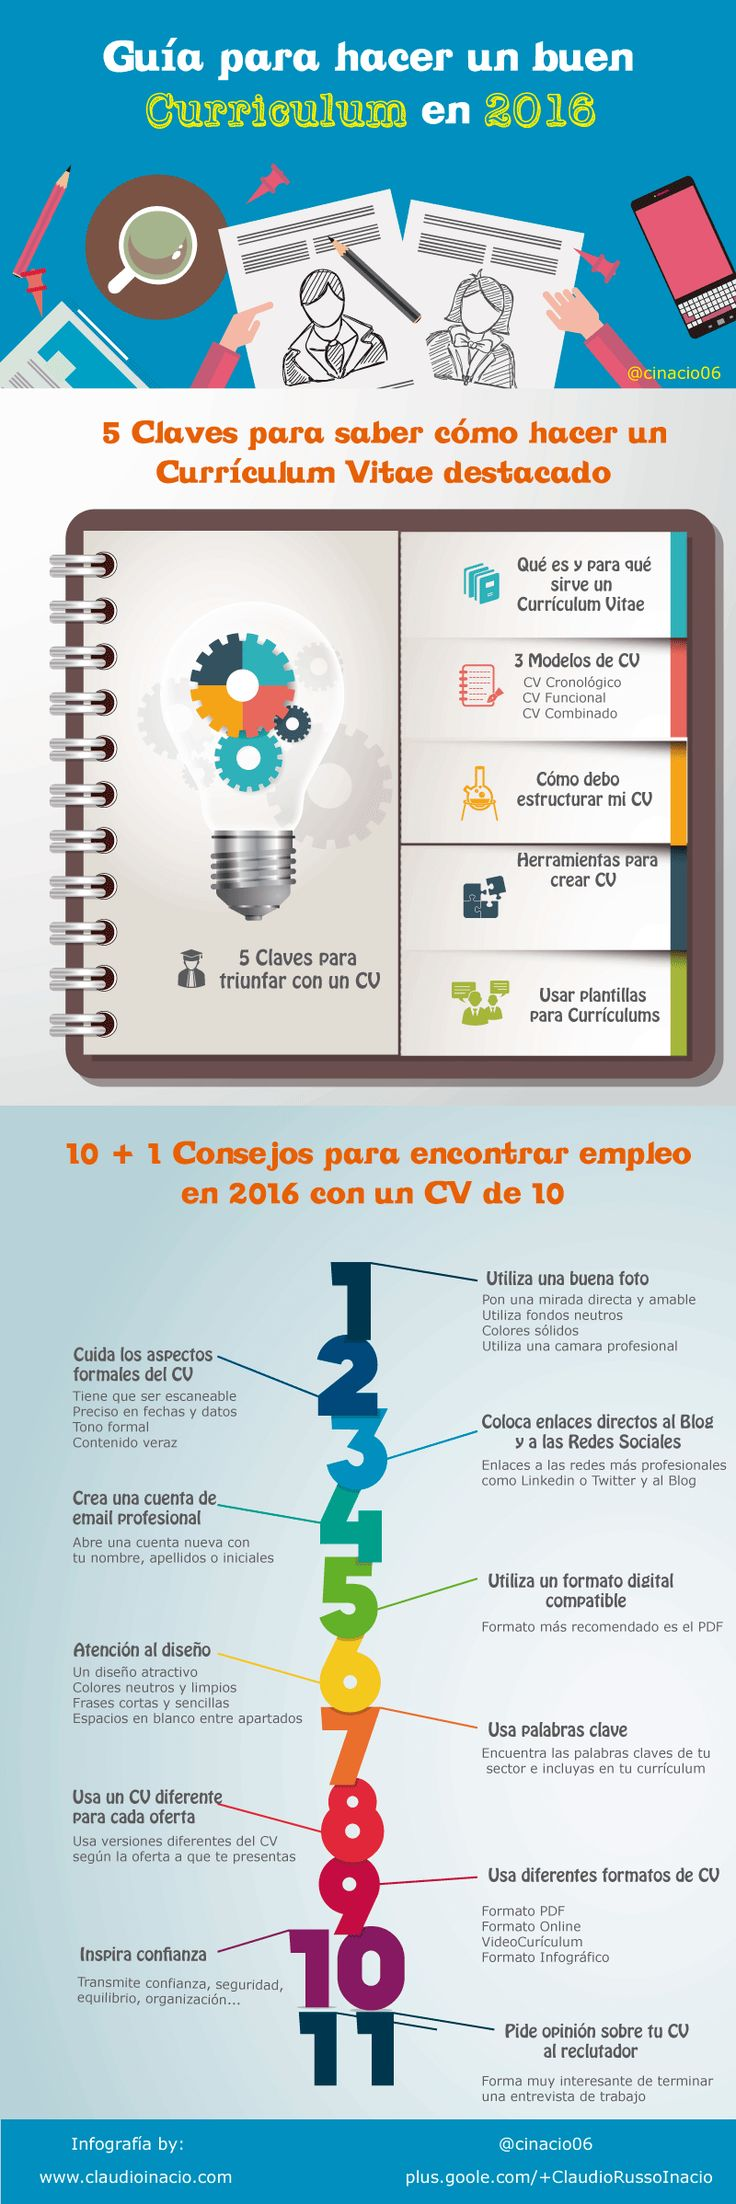 748 best Empleo images on Pinterest | Empleos, Marca personal y ...